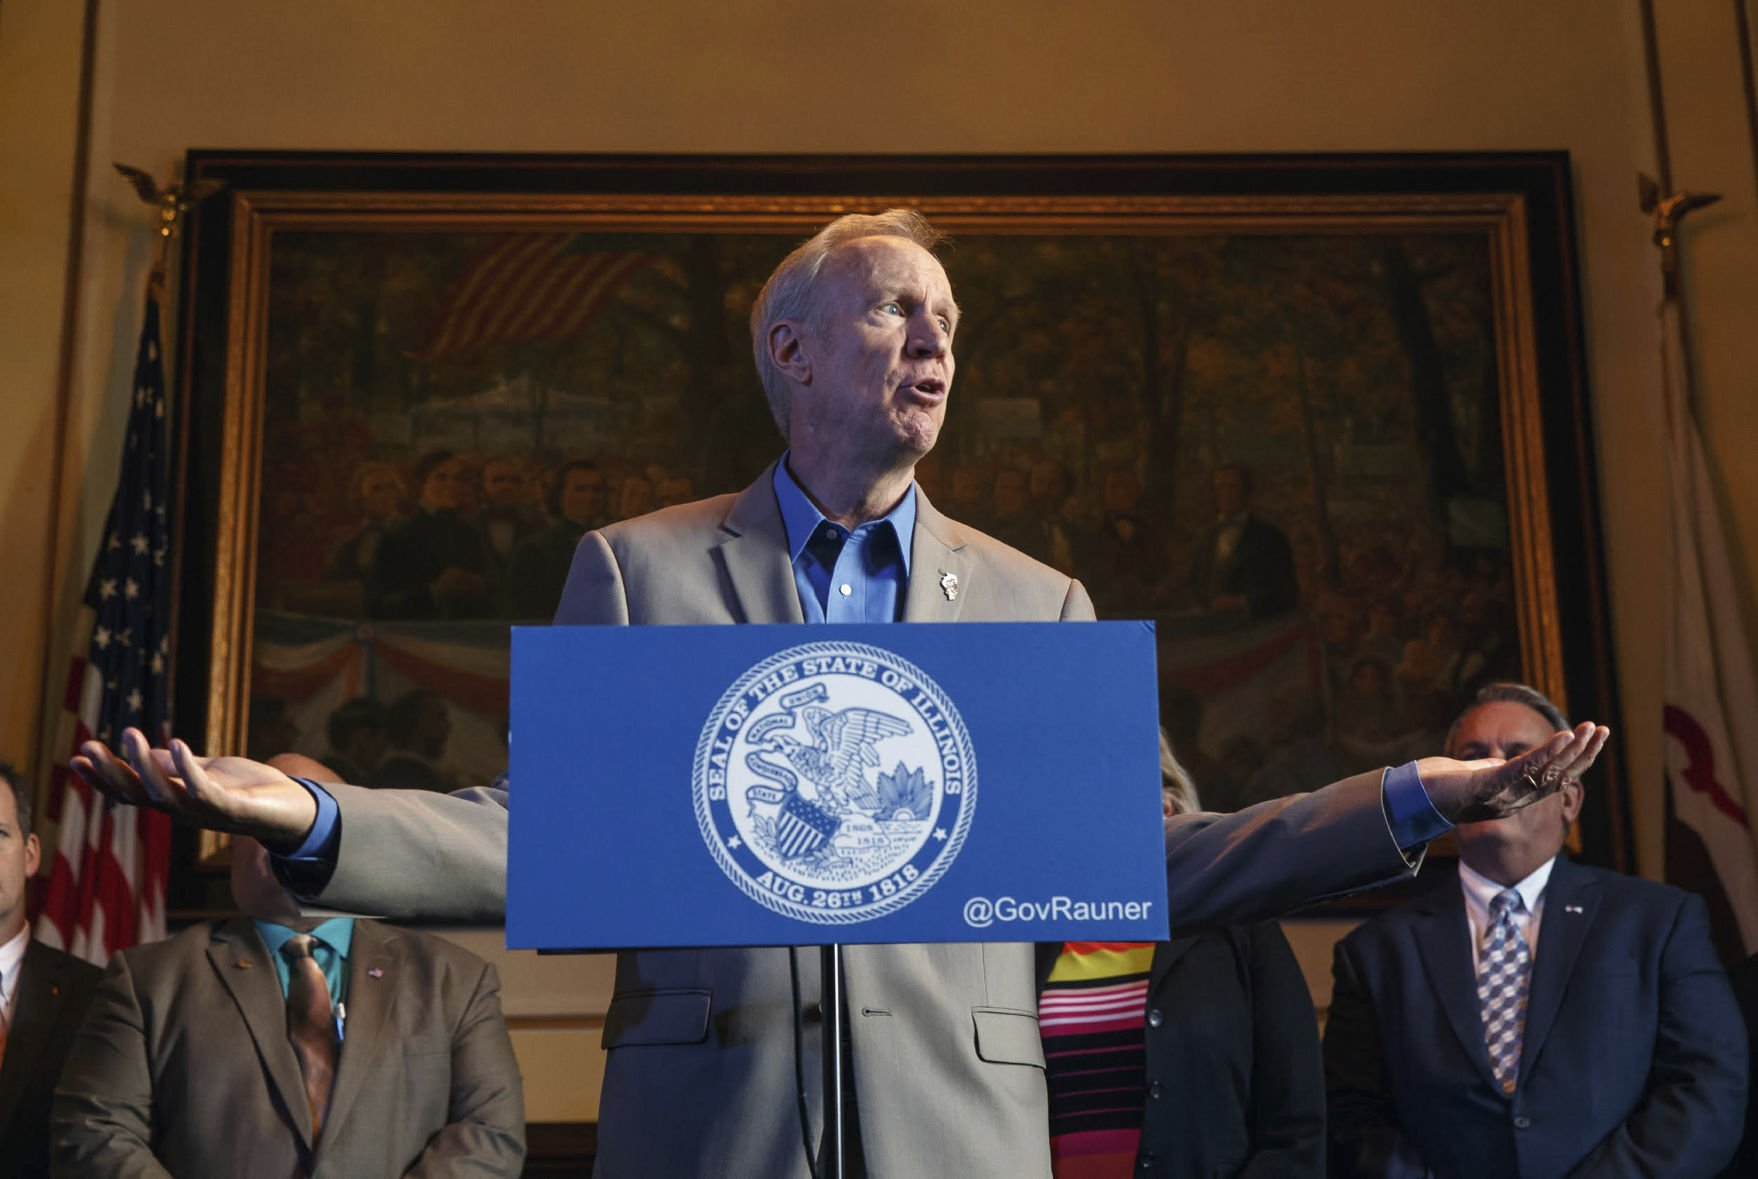 Illinois Lawmakers Quickly Adjourn Second Day Of School Funding Session